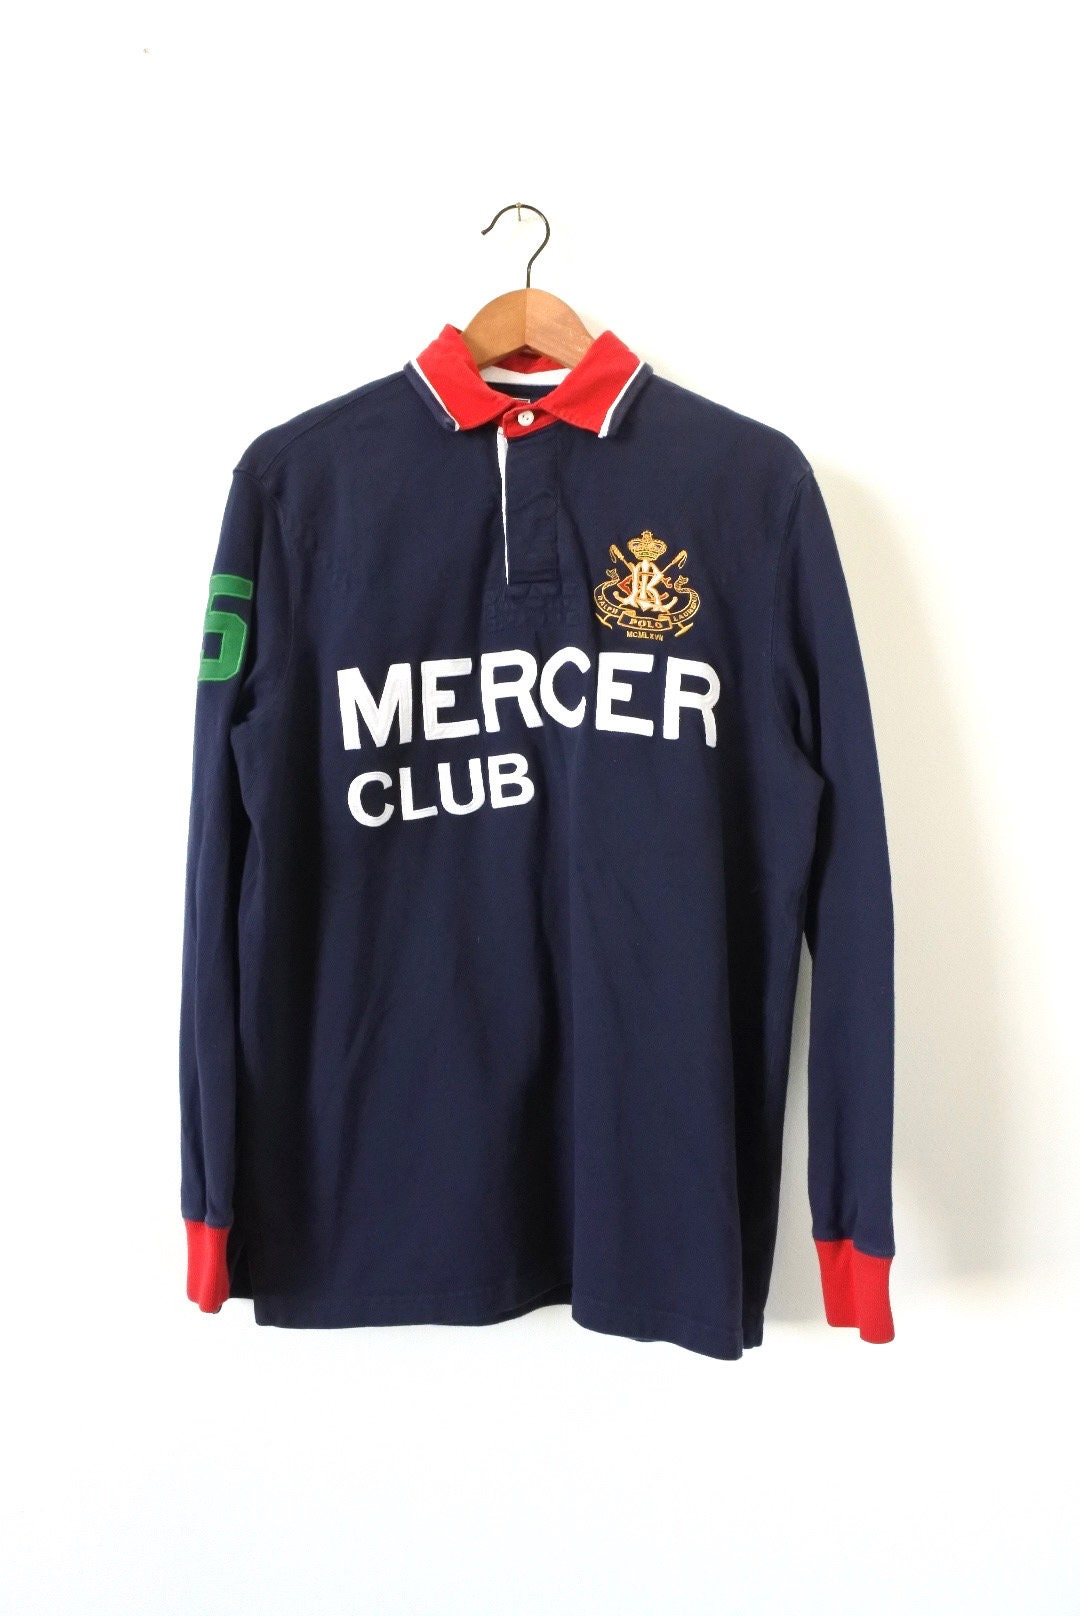 Mercer Club Rugby By Polo Ralph Lauren Large Etsy